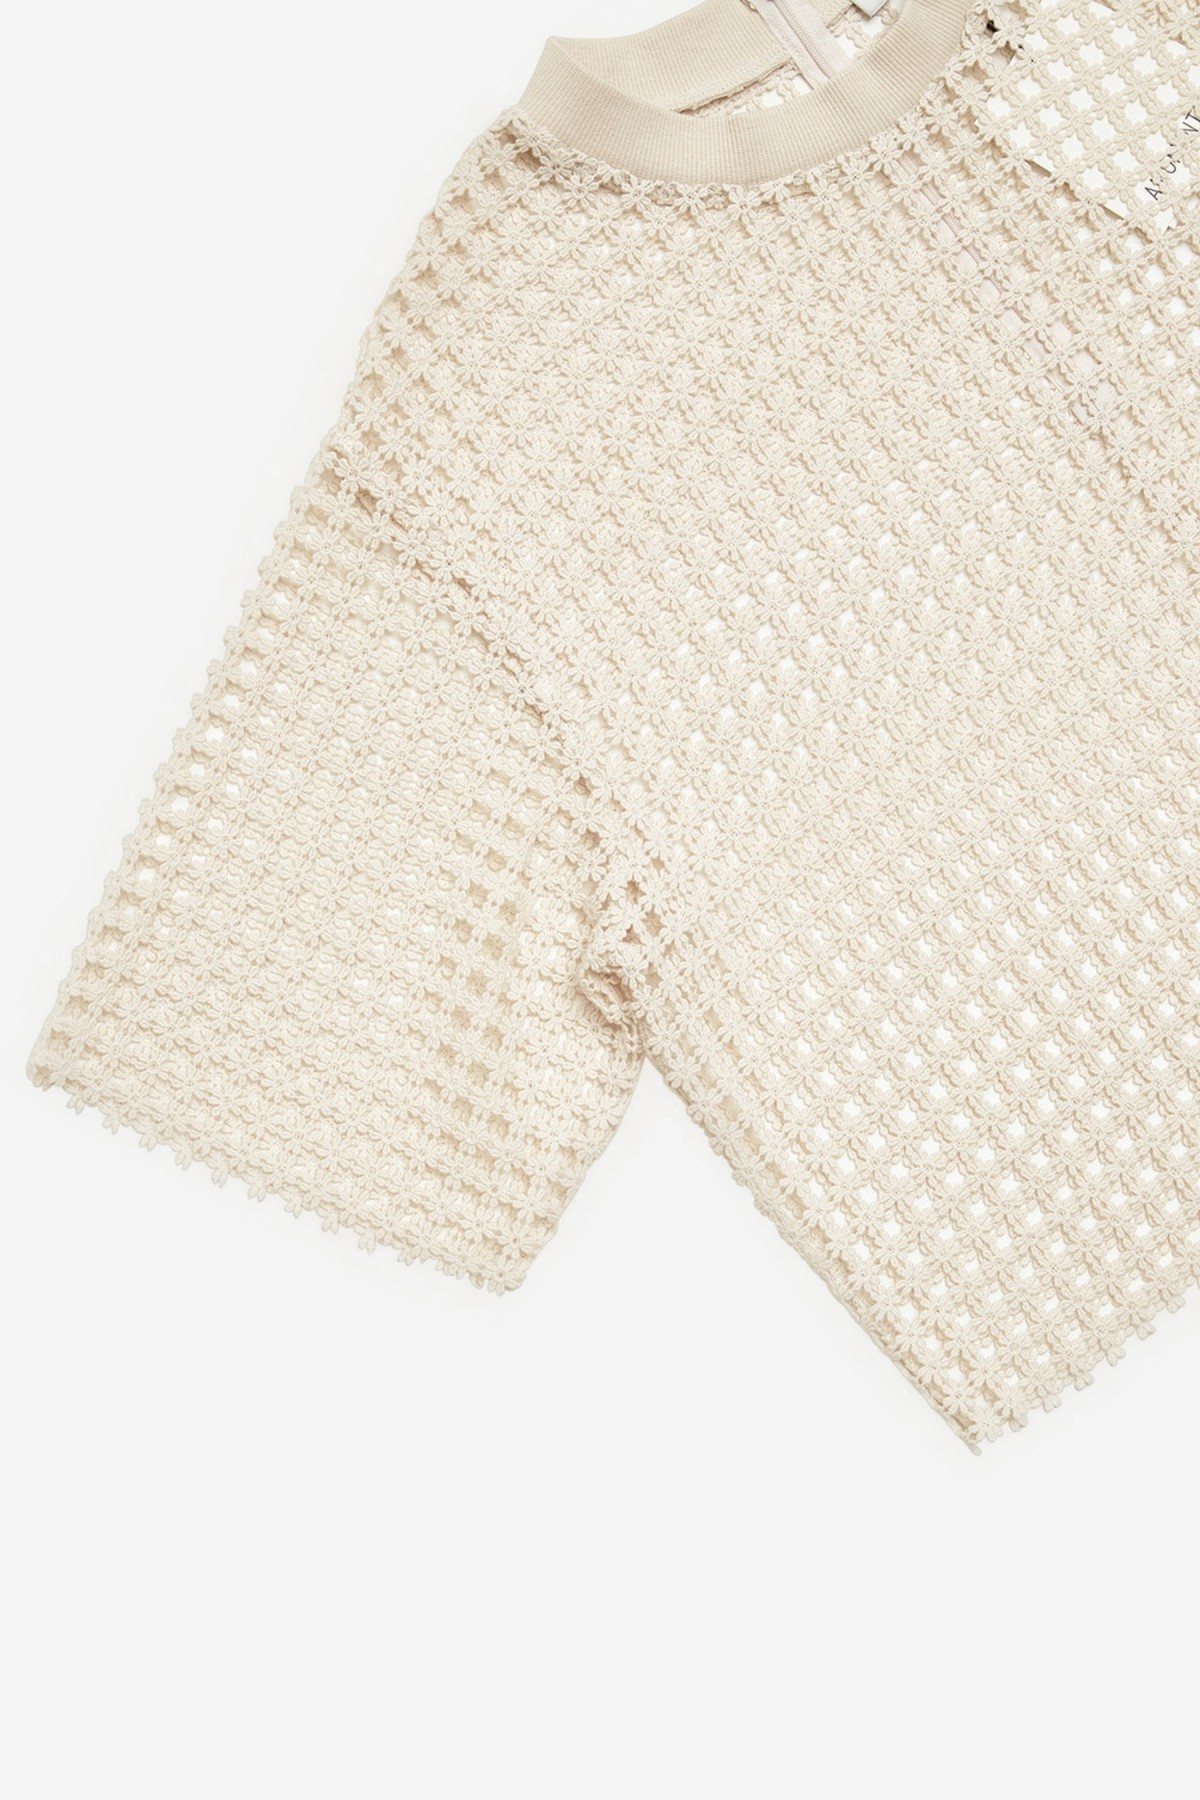 Amomento Flower Lace Crop Top in Ivory